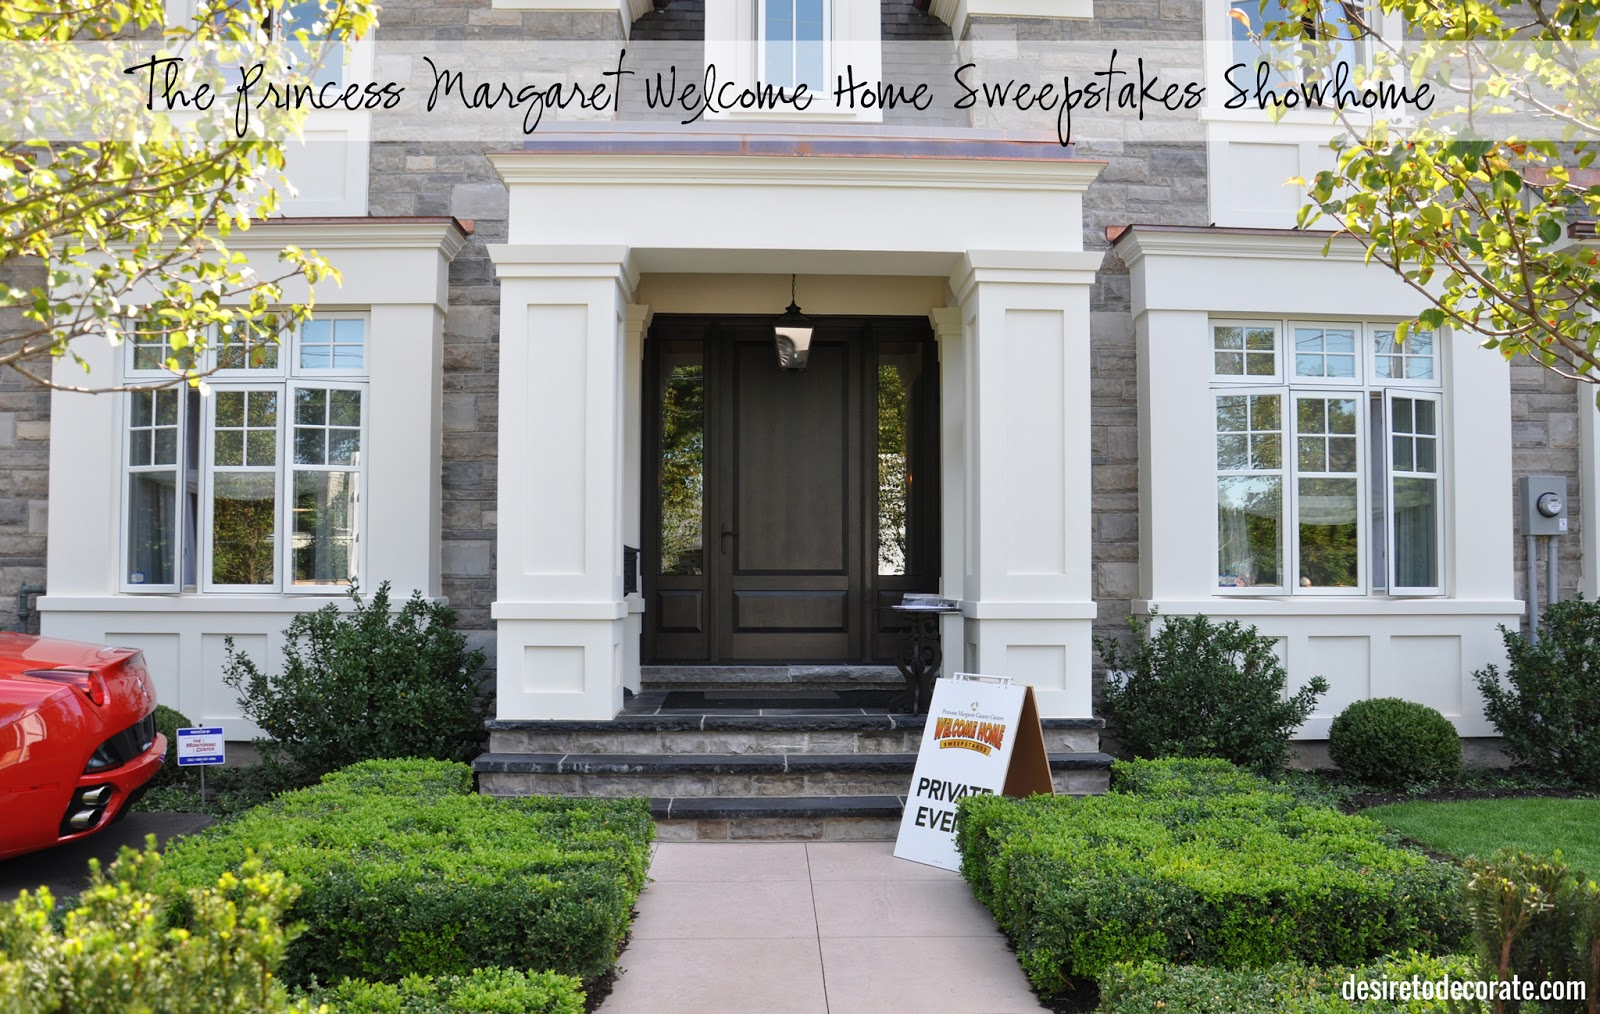 earlier this week i had the opportunity to join the princess margaret welcome home sweepstakes showhome contributor launch - House Sweepstakes